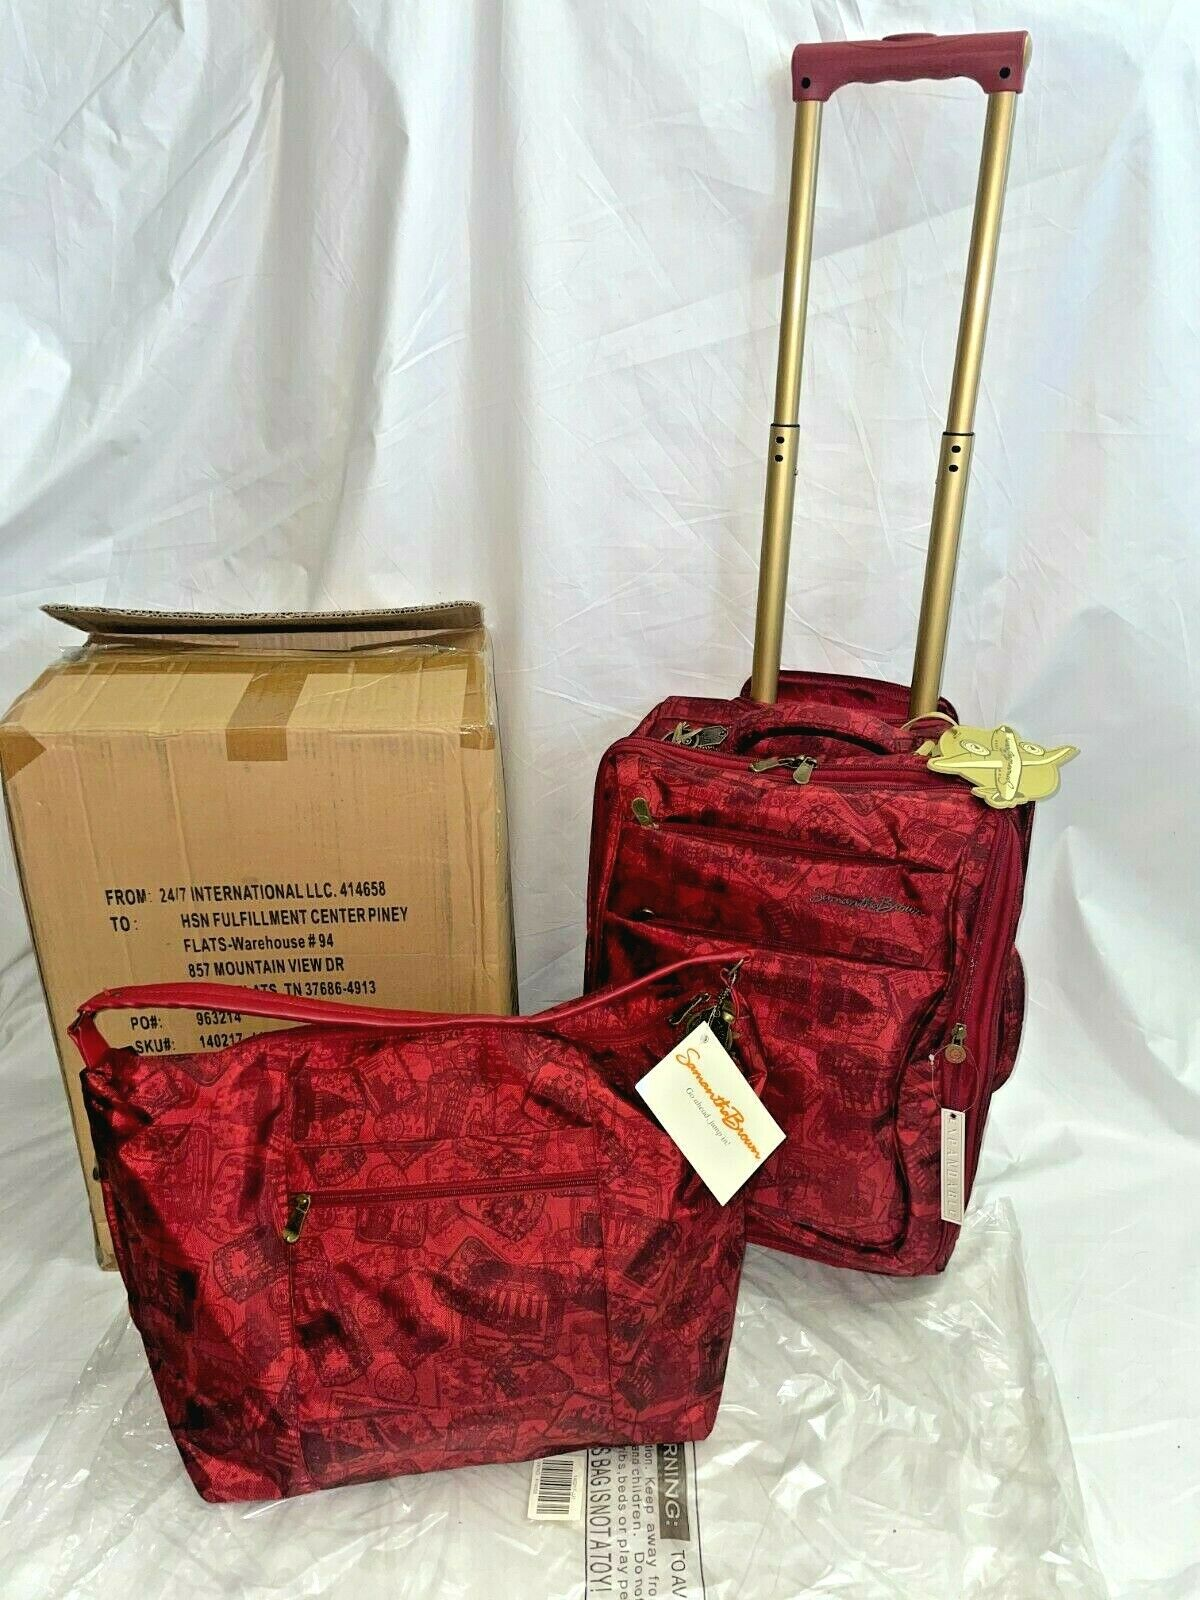 New Samantha Brown 2Pc Casual Travel Luggage Set 20 Upright Carry-On Bag Red - $99.95